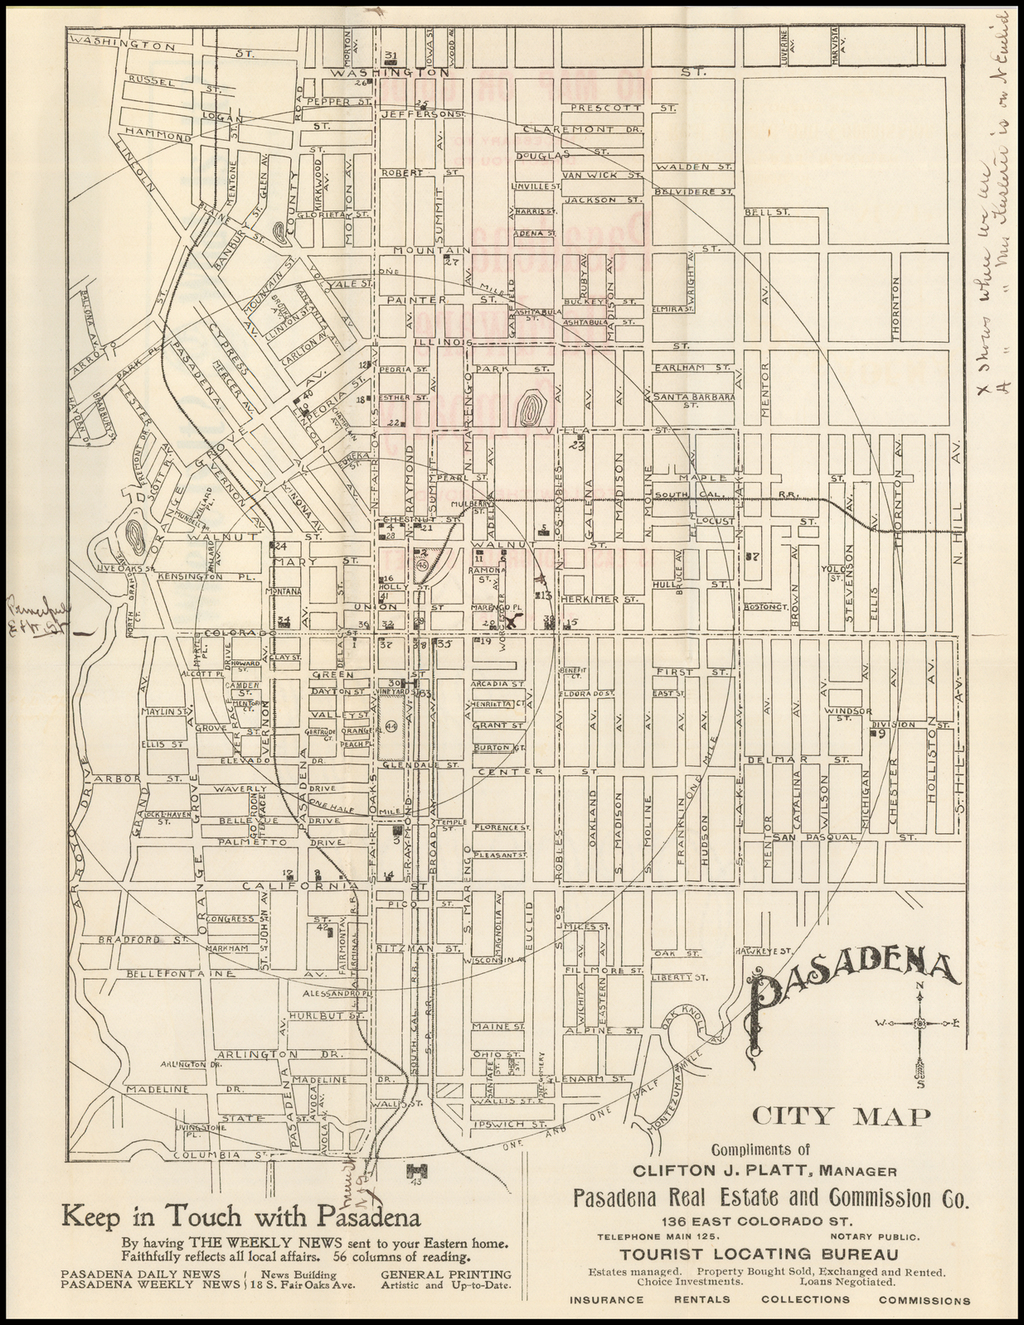 Pasadena City Map (and Guide) By Pasadena Real Estate and Commission Co.